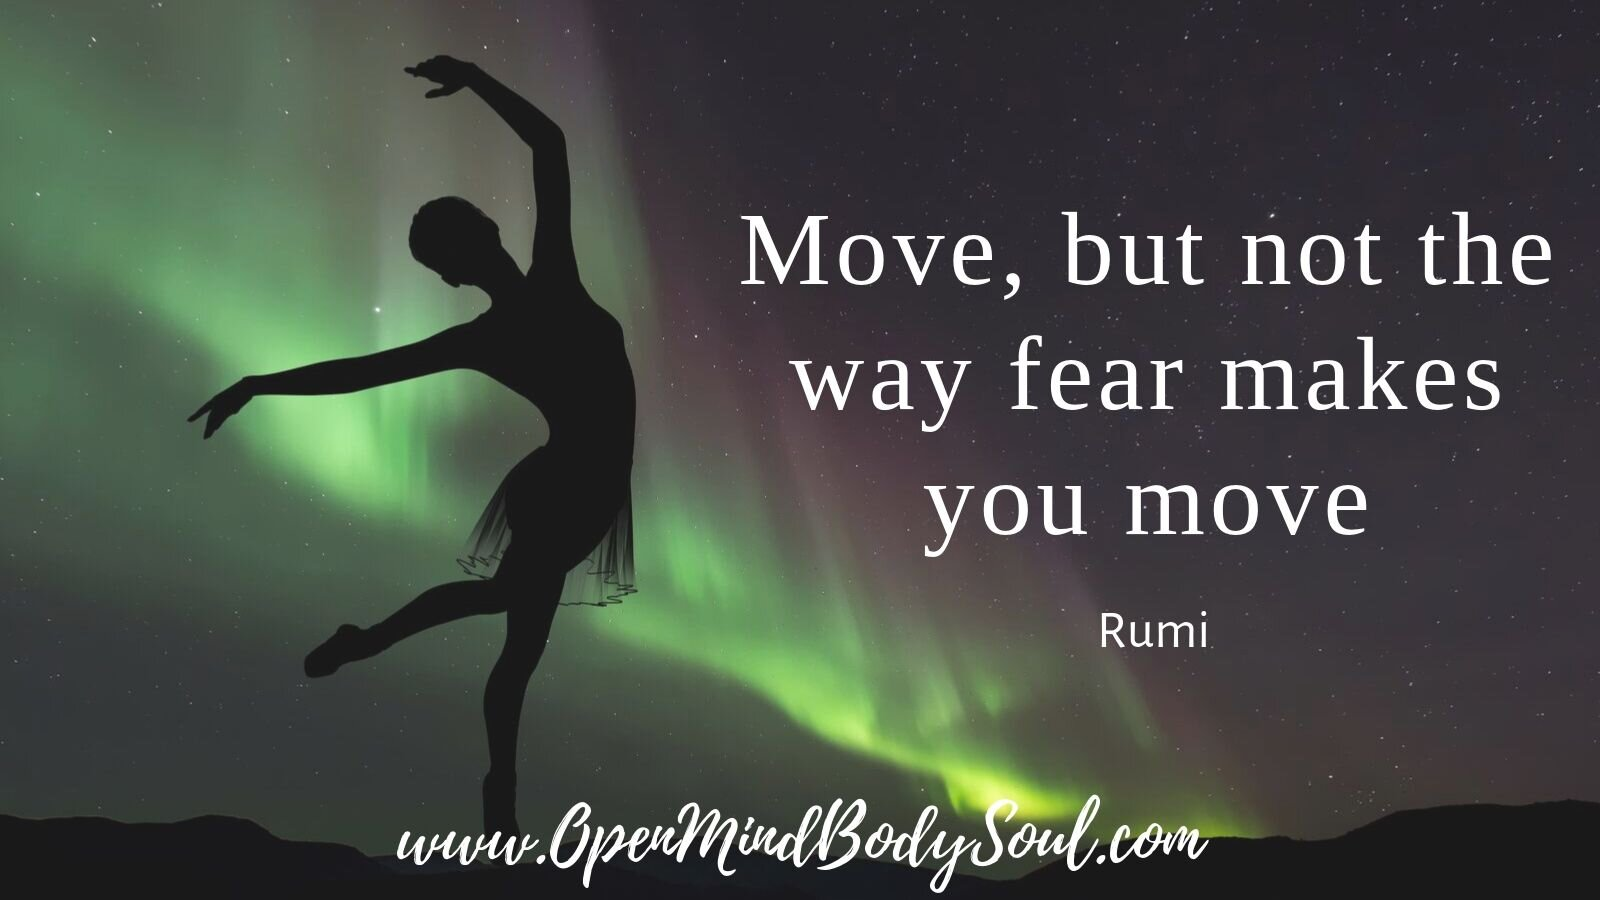 Move, but not the way fear makes you move - Rumi